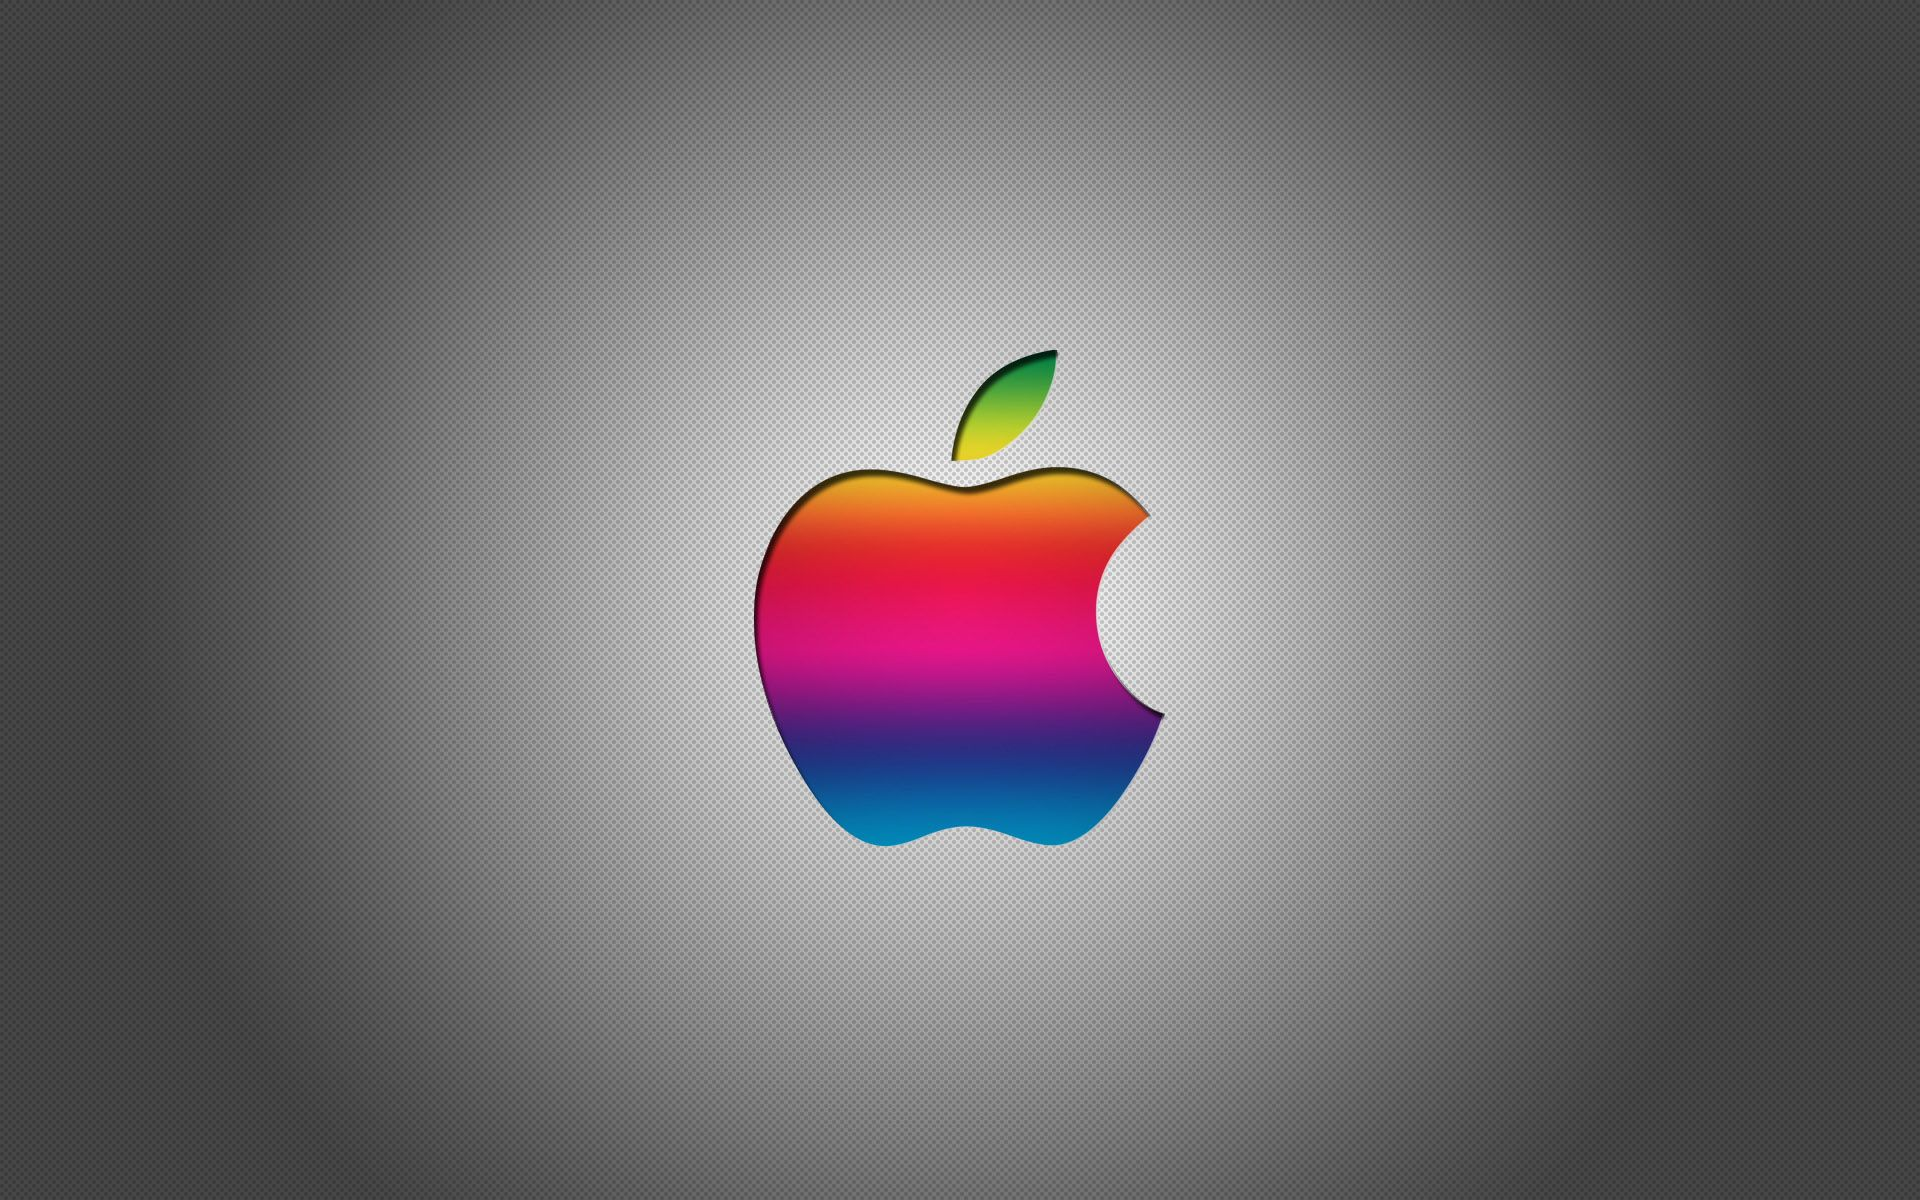 Colorful apple logo with grey background hd wallpaper for Immagini apple hd